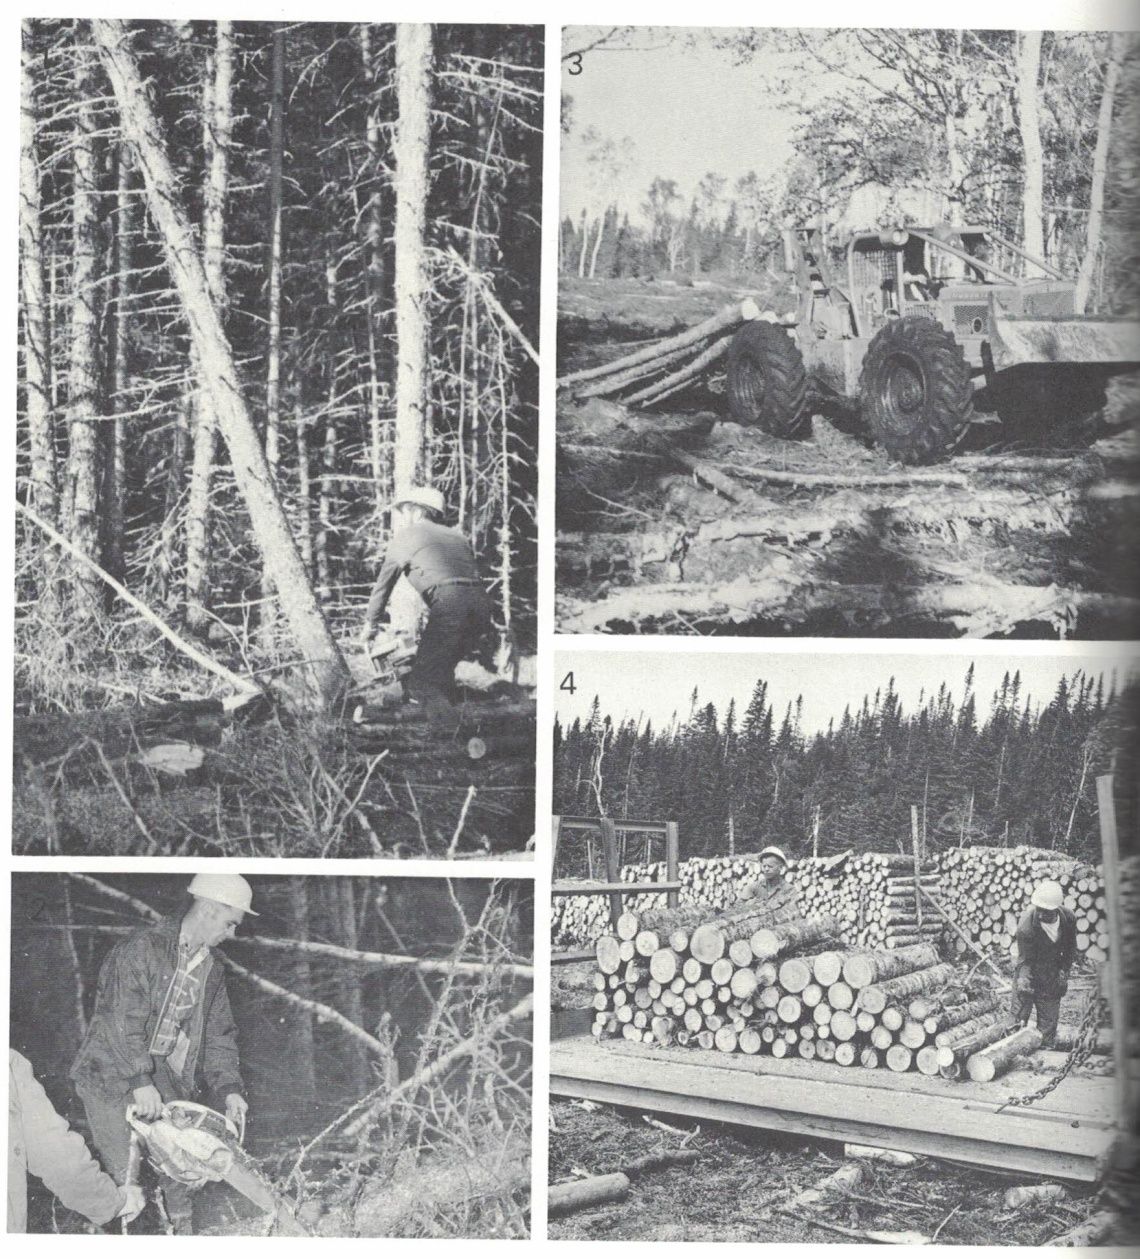 The introduction of the powersaw and skidder in the 1950's and 60's revolutionized pulpwood cutting and led to a drastic decrease in the number of men needed in the woods. (from Forestry in Newfoundland)